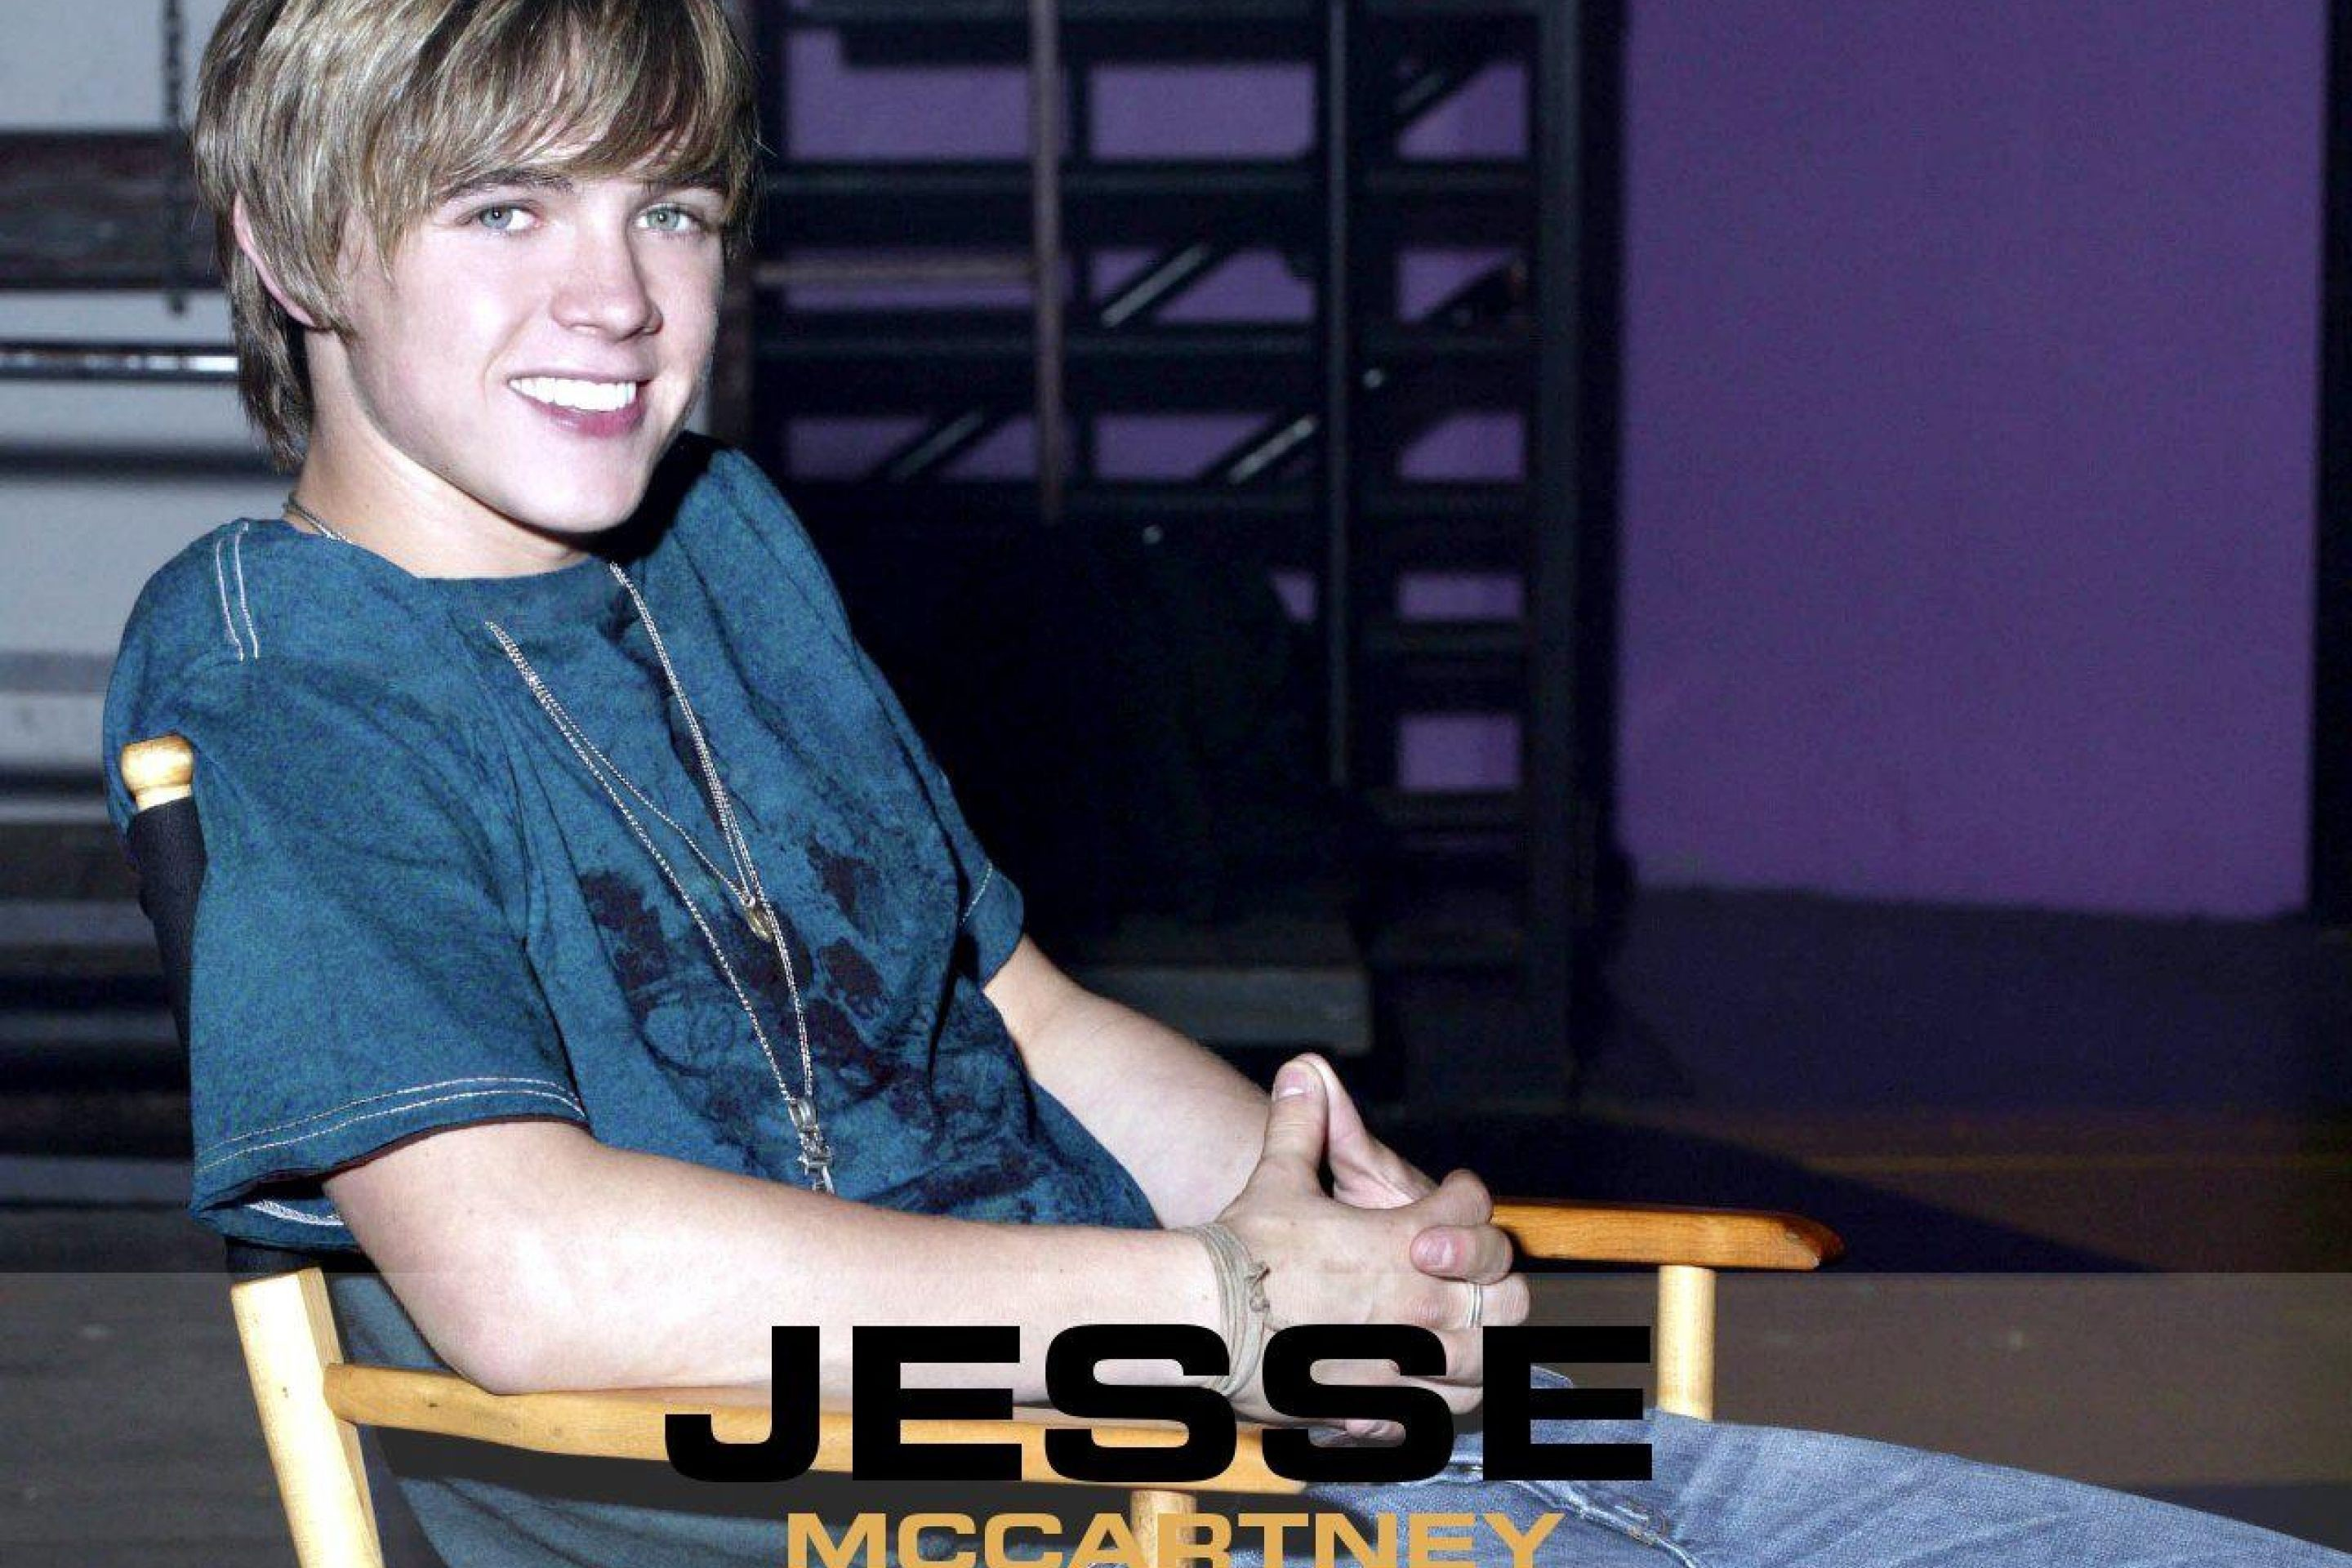 2880x1920 Pin Jesse Mccartney Wallpaper on Pinterest